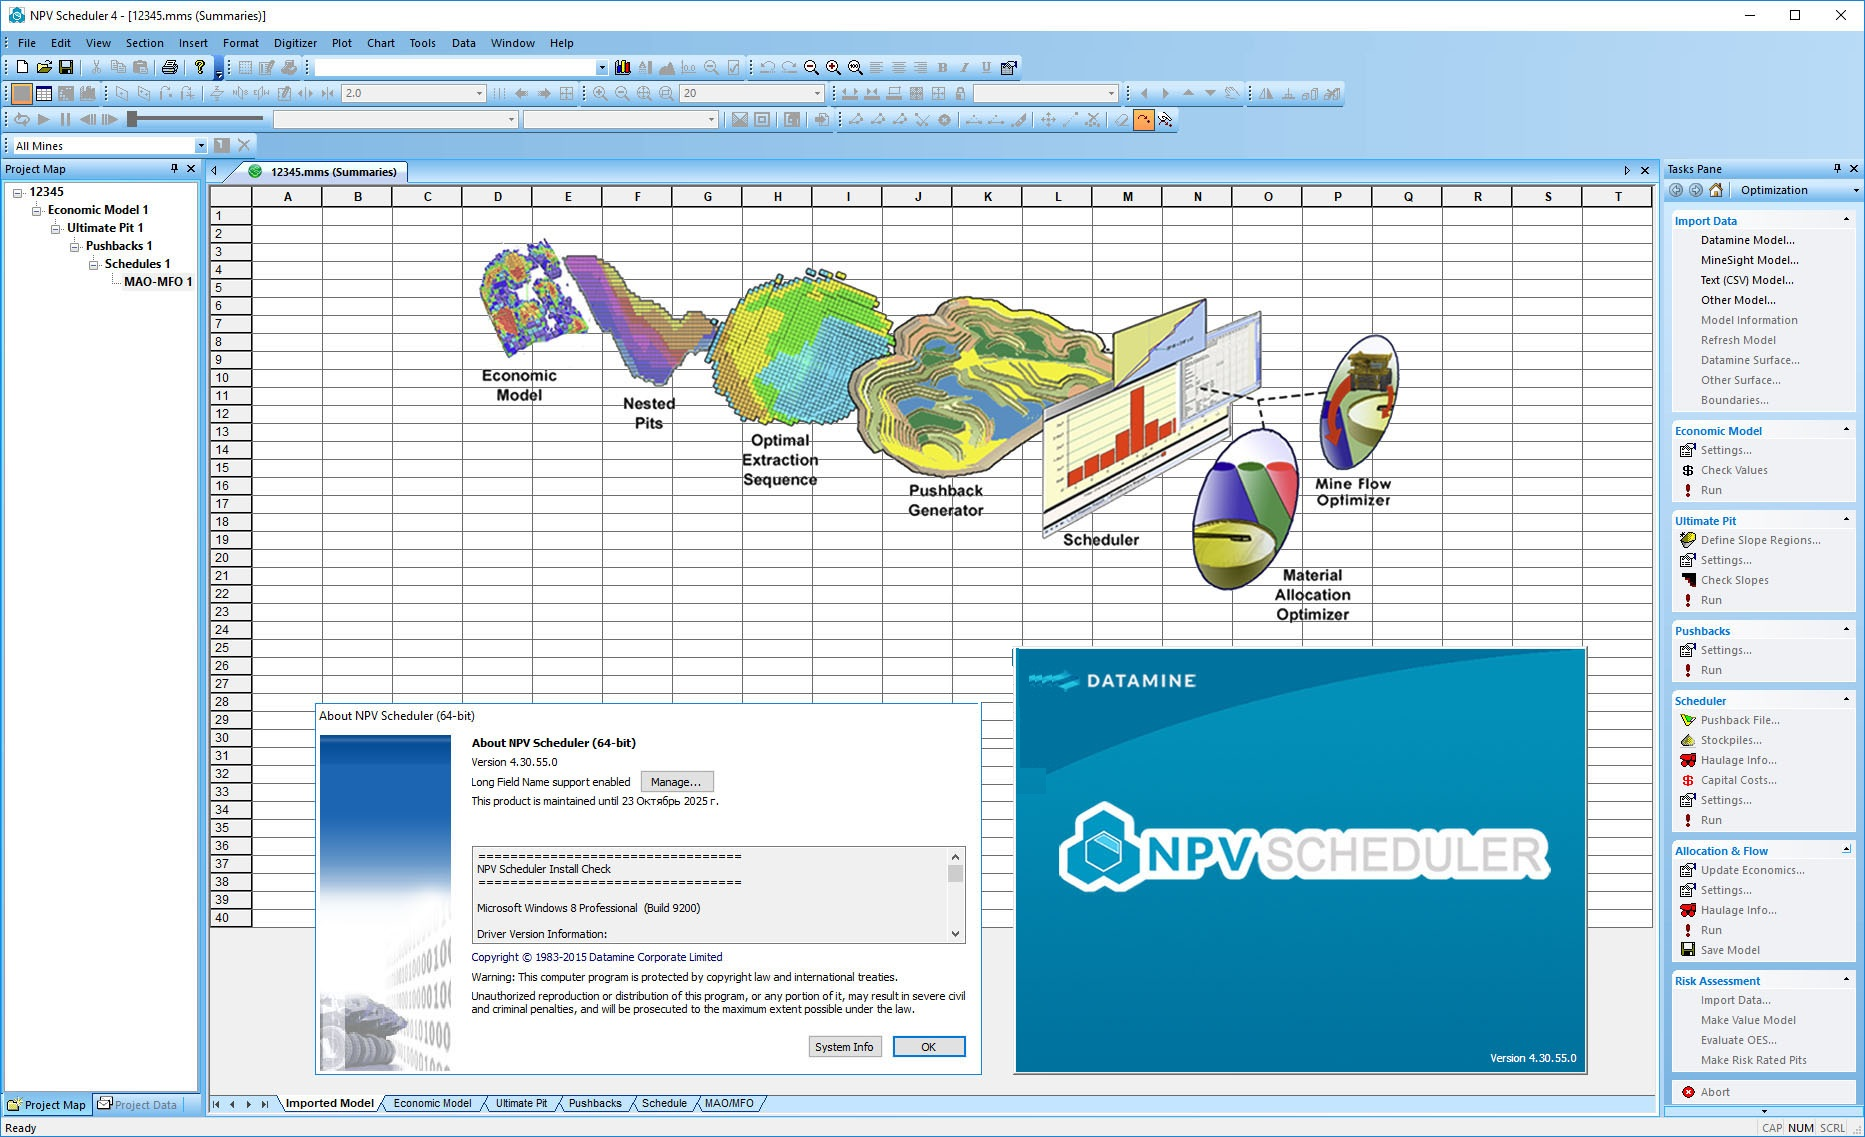 Working with Datamine NPV Scheduler 4.30.55.0 full